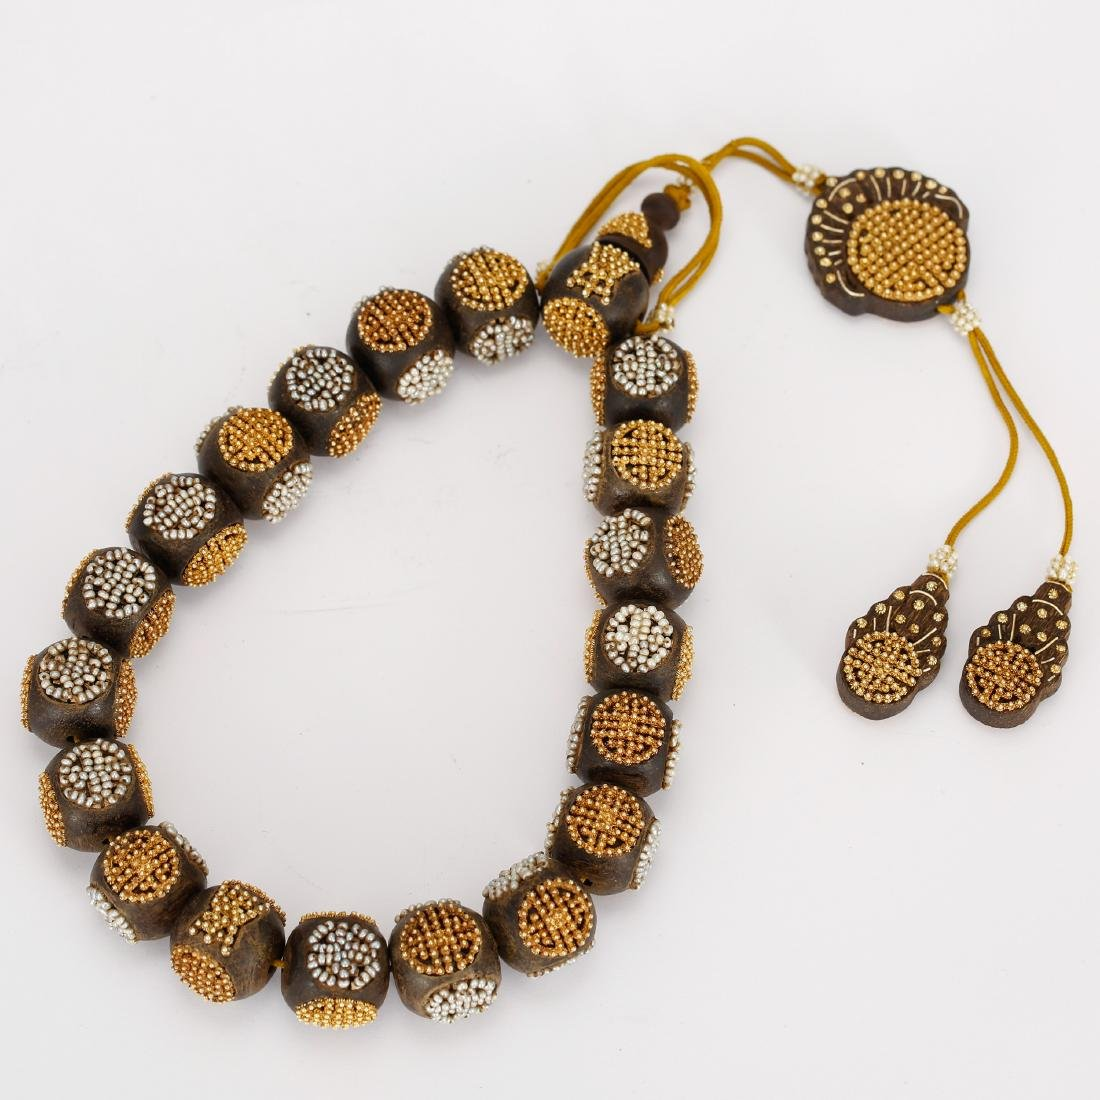 CHINESE QING DYNASTY CHENXIANG BEADS BRACELET - 3